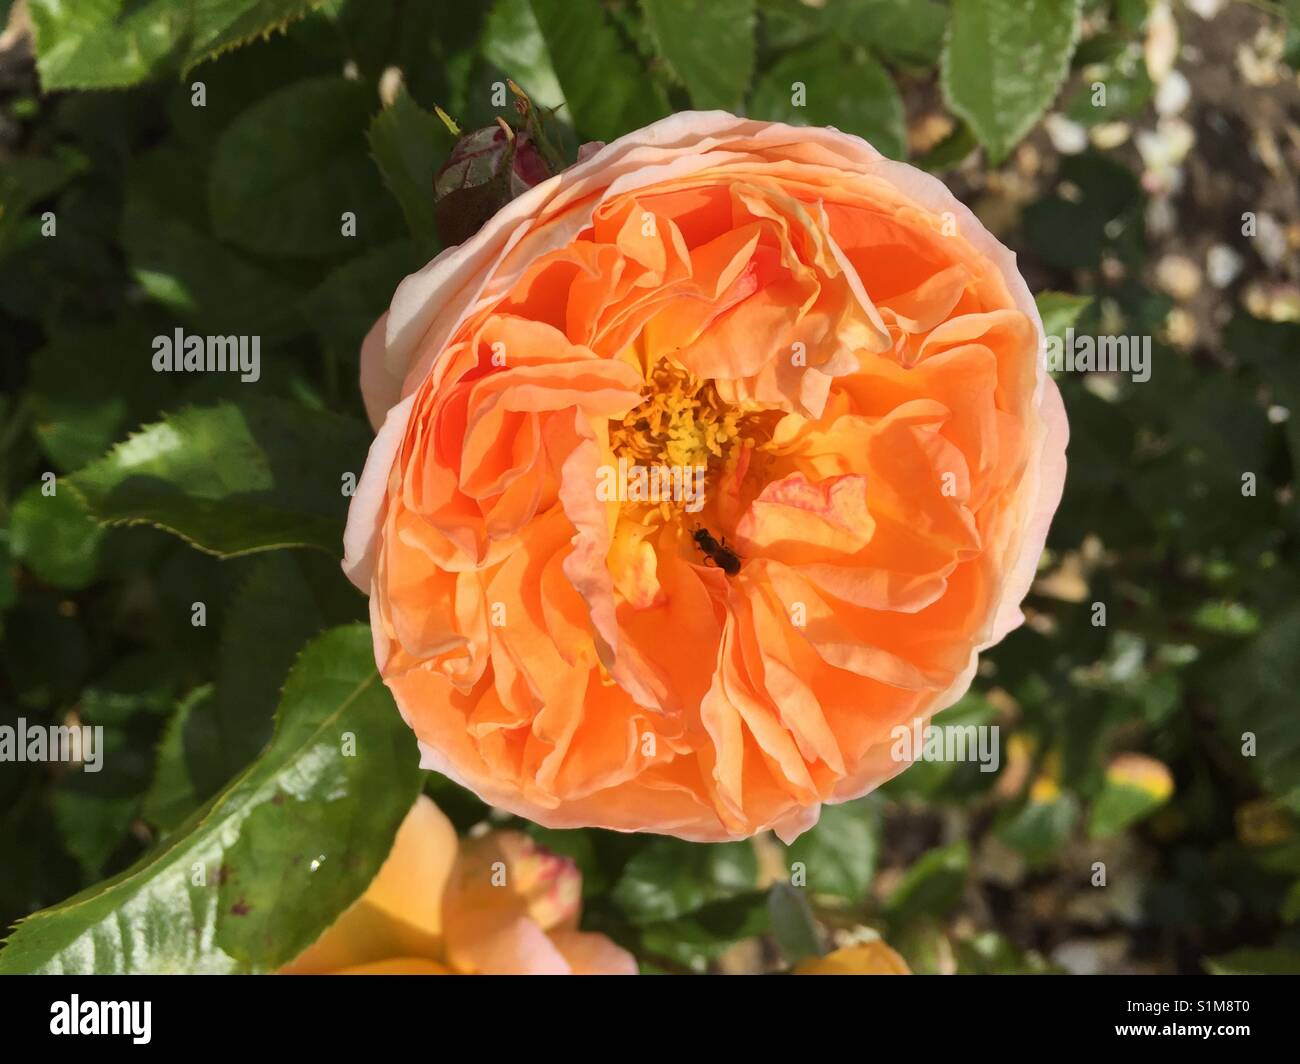 Floridunda rosette shaped fully double Peach rose 'Sunlight Romantica'.  Single rose bloom with green leaf - Stock Image